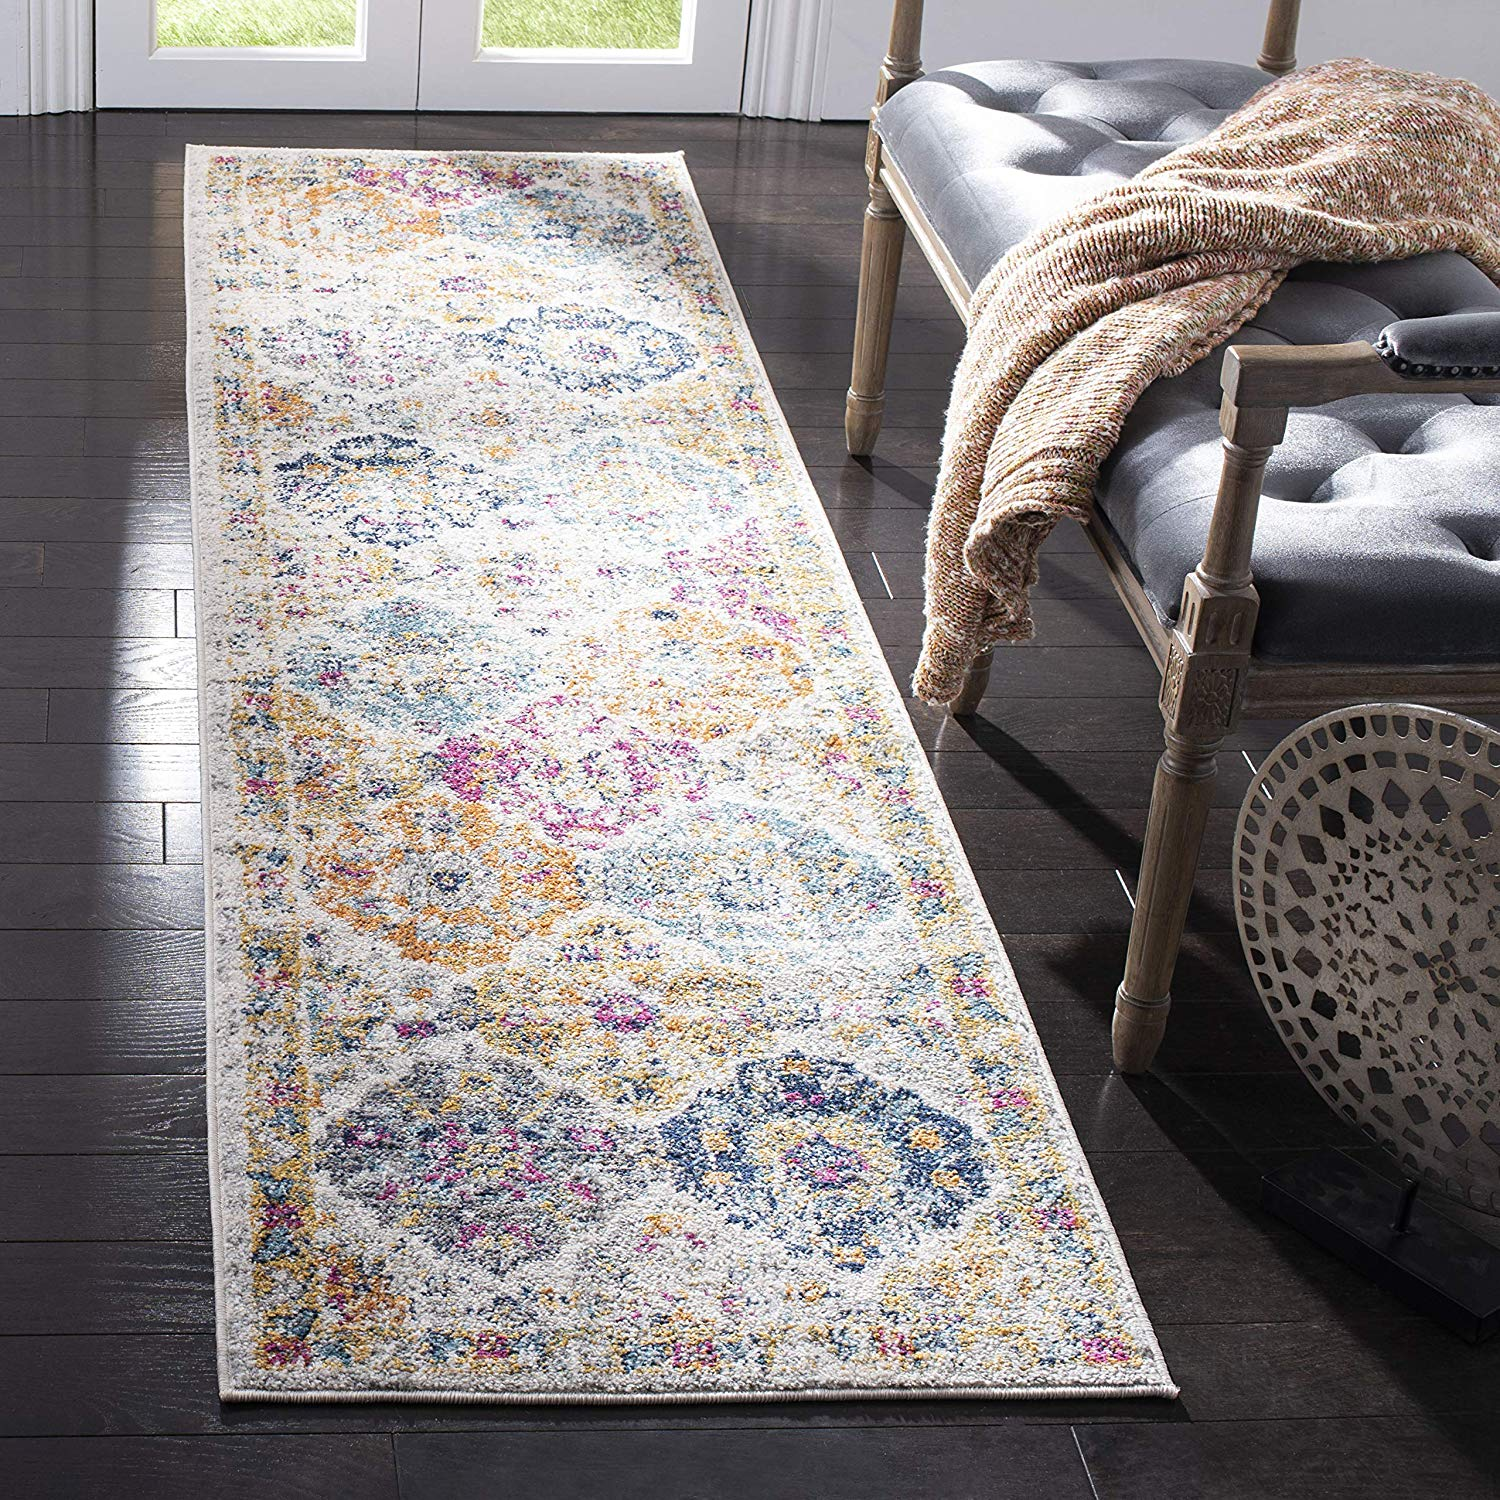 Safavieh Vintage Carpet Runner, 2.3×8-Foot